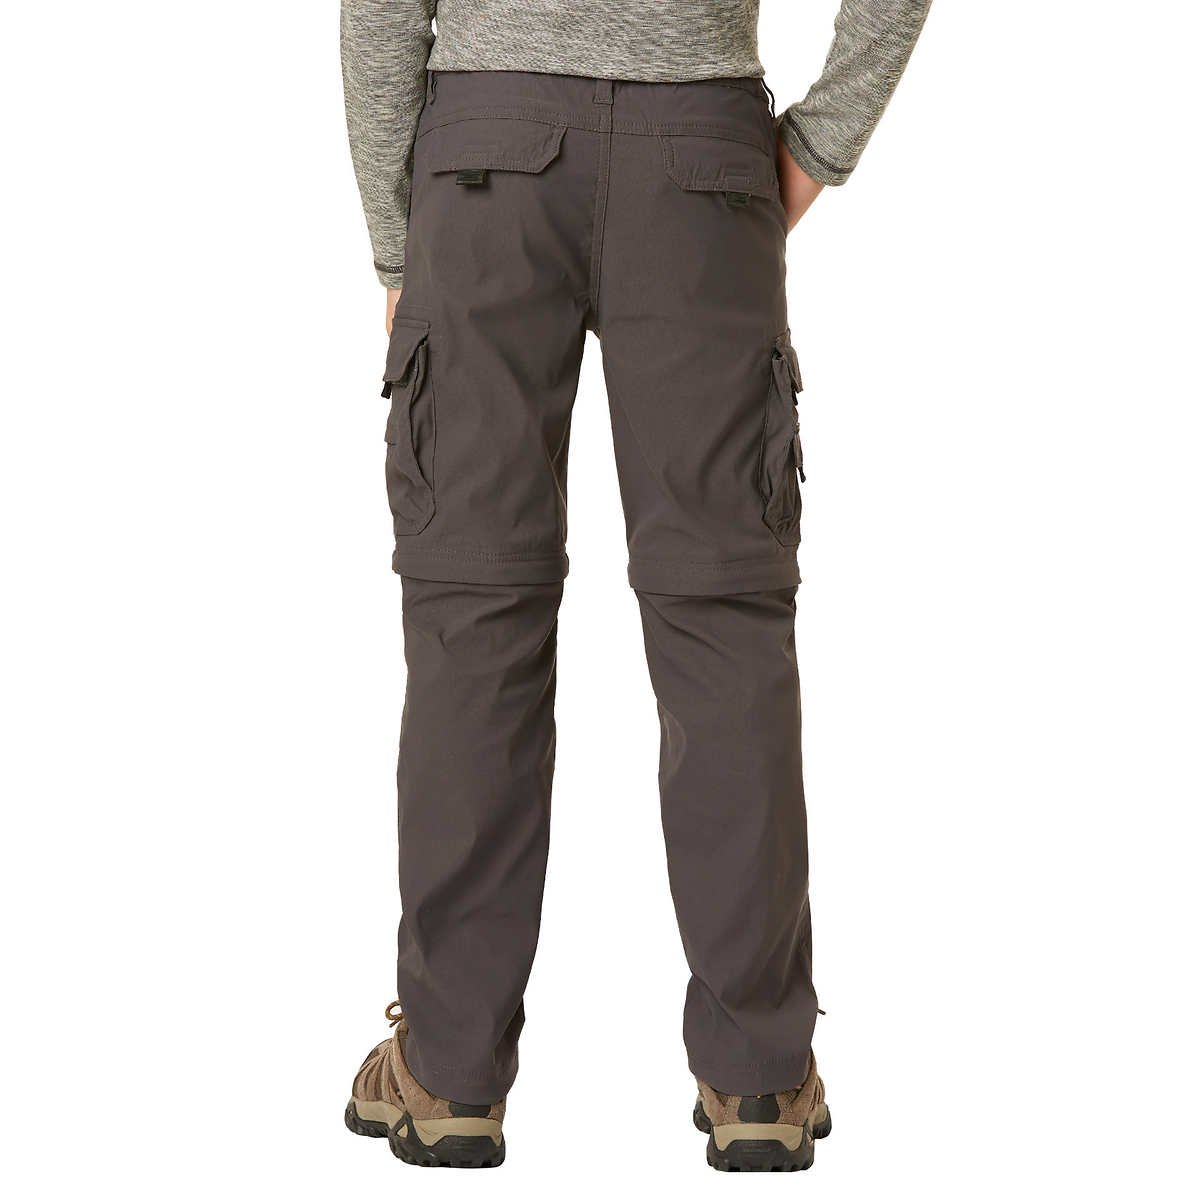 UNIONBAY Boy's Youth Convertible Lightweight Comfort Stretch Cargo Pants/Shorts (X-Small (5/6), Charcoal) by UNIONBAY (Image #2)